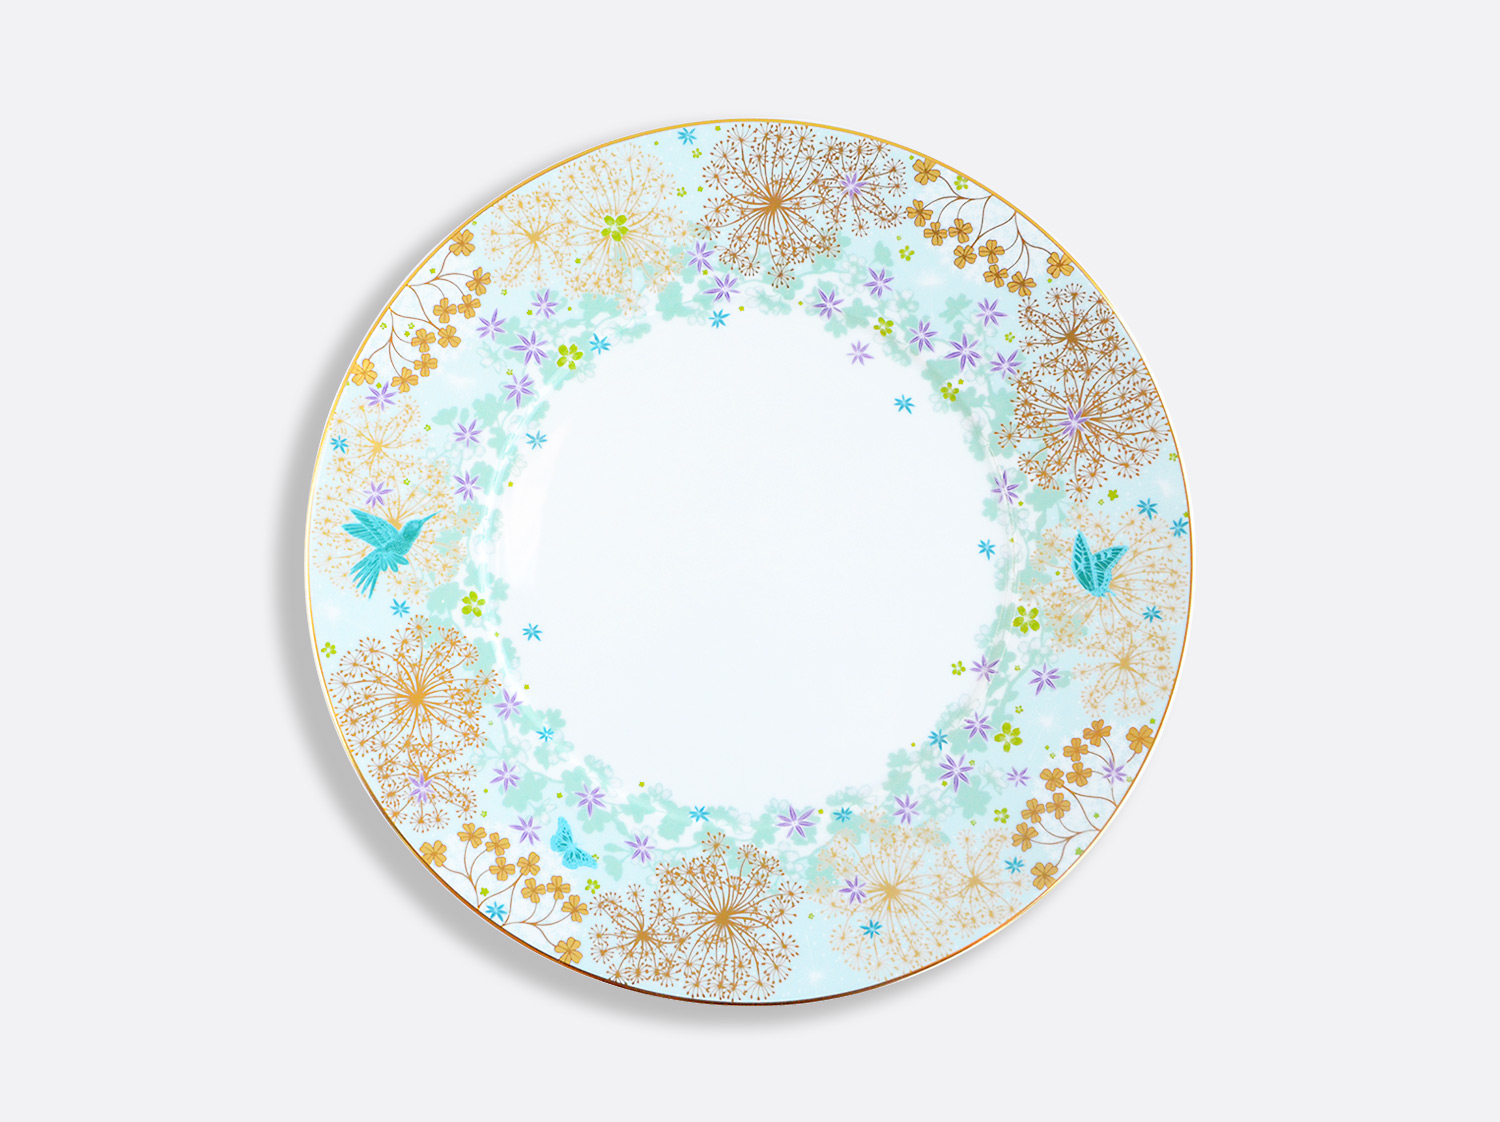 China Dinner plate 26 cm of the collection FÉERIE - MICHAËL CAILLOUX | Bernardaud